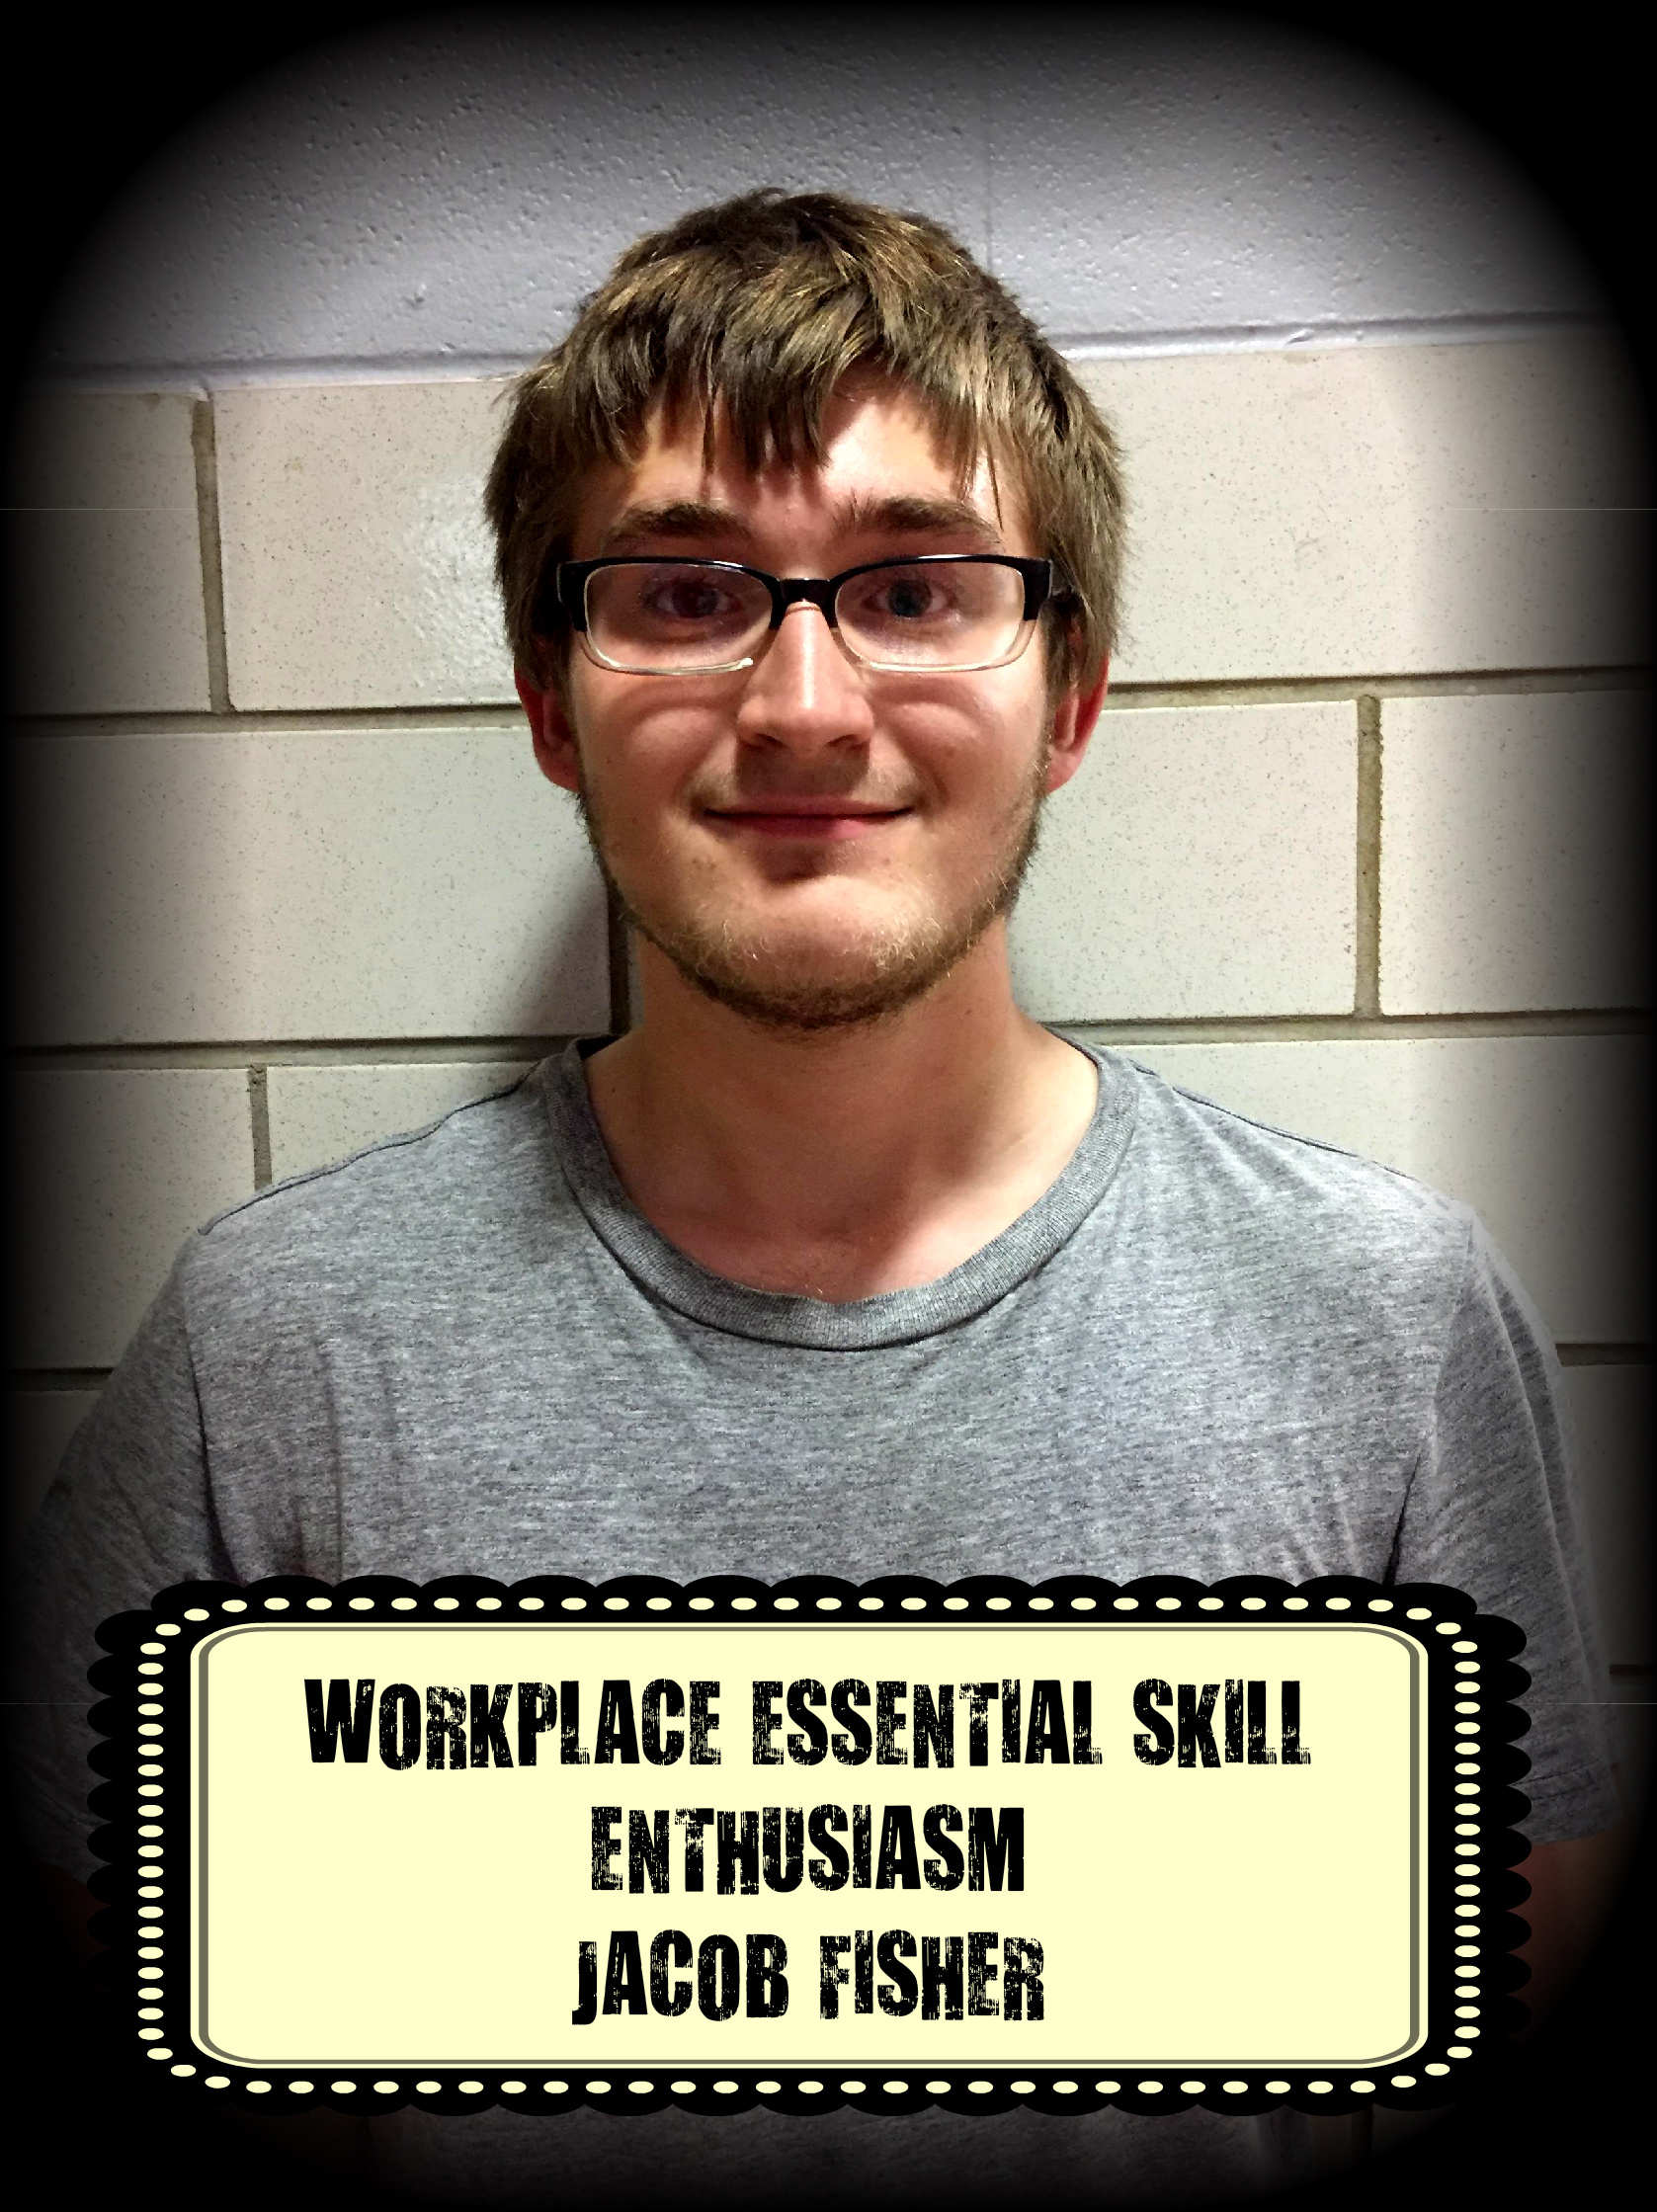 Jacob Fisher was awarded the Workplace Essential Skill Award for ENTHUSIASM in Industrial Maintenance.